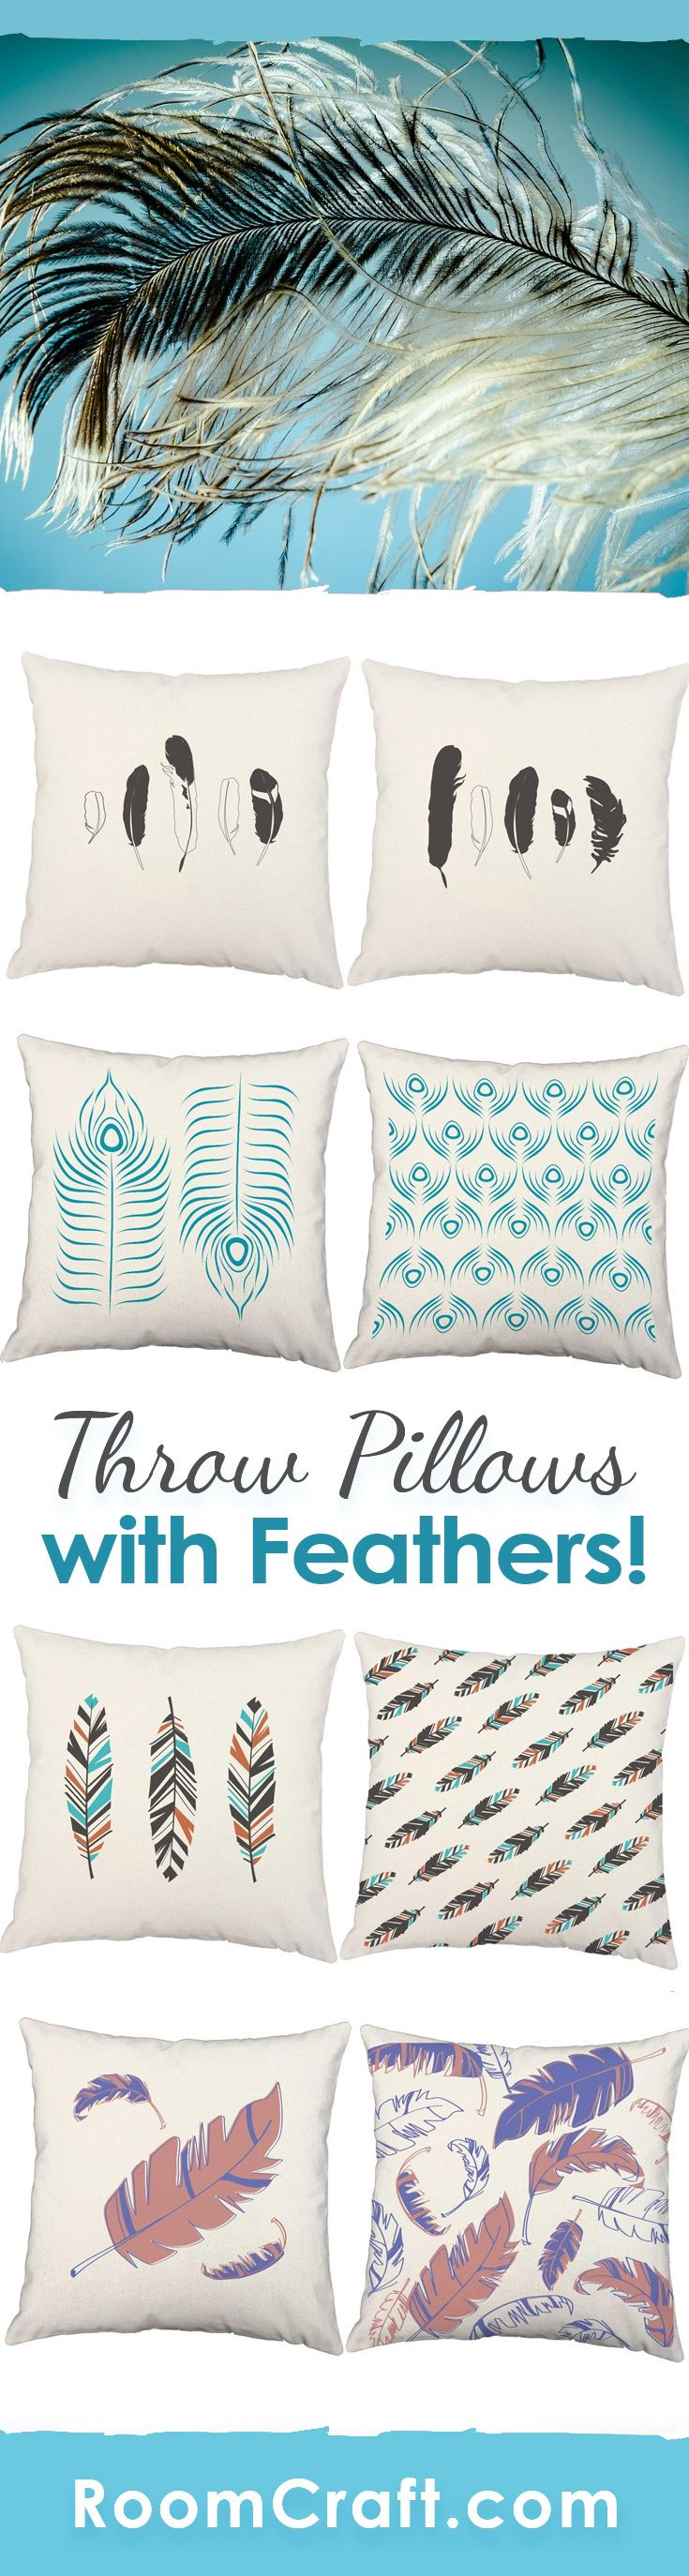 """""""If I were a bird I would fly wild and free."""" Soar high with these beautiful feather throw pillows. Each design is offered in multiple colors, sizes and fabrics making them perfect for your home, office, or sun room. Out quality bird feather pillow covers are made to order in the USA and feature 3 wooden buttons on the back for closure. Choose your favorite and create a truly unique pillow set. #roomcraft"""